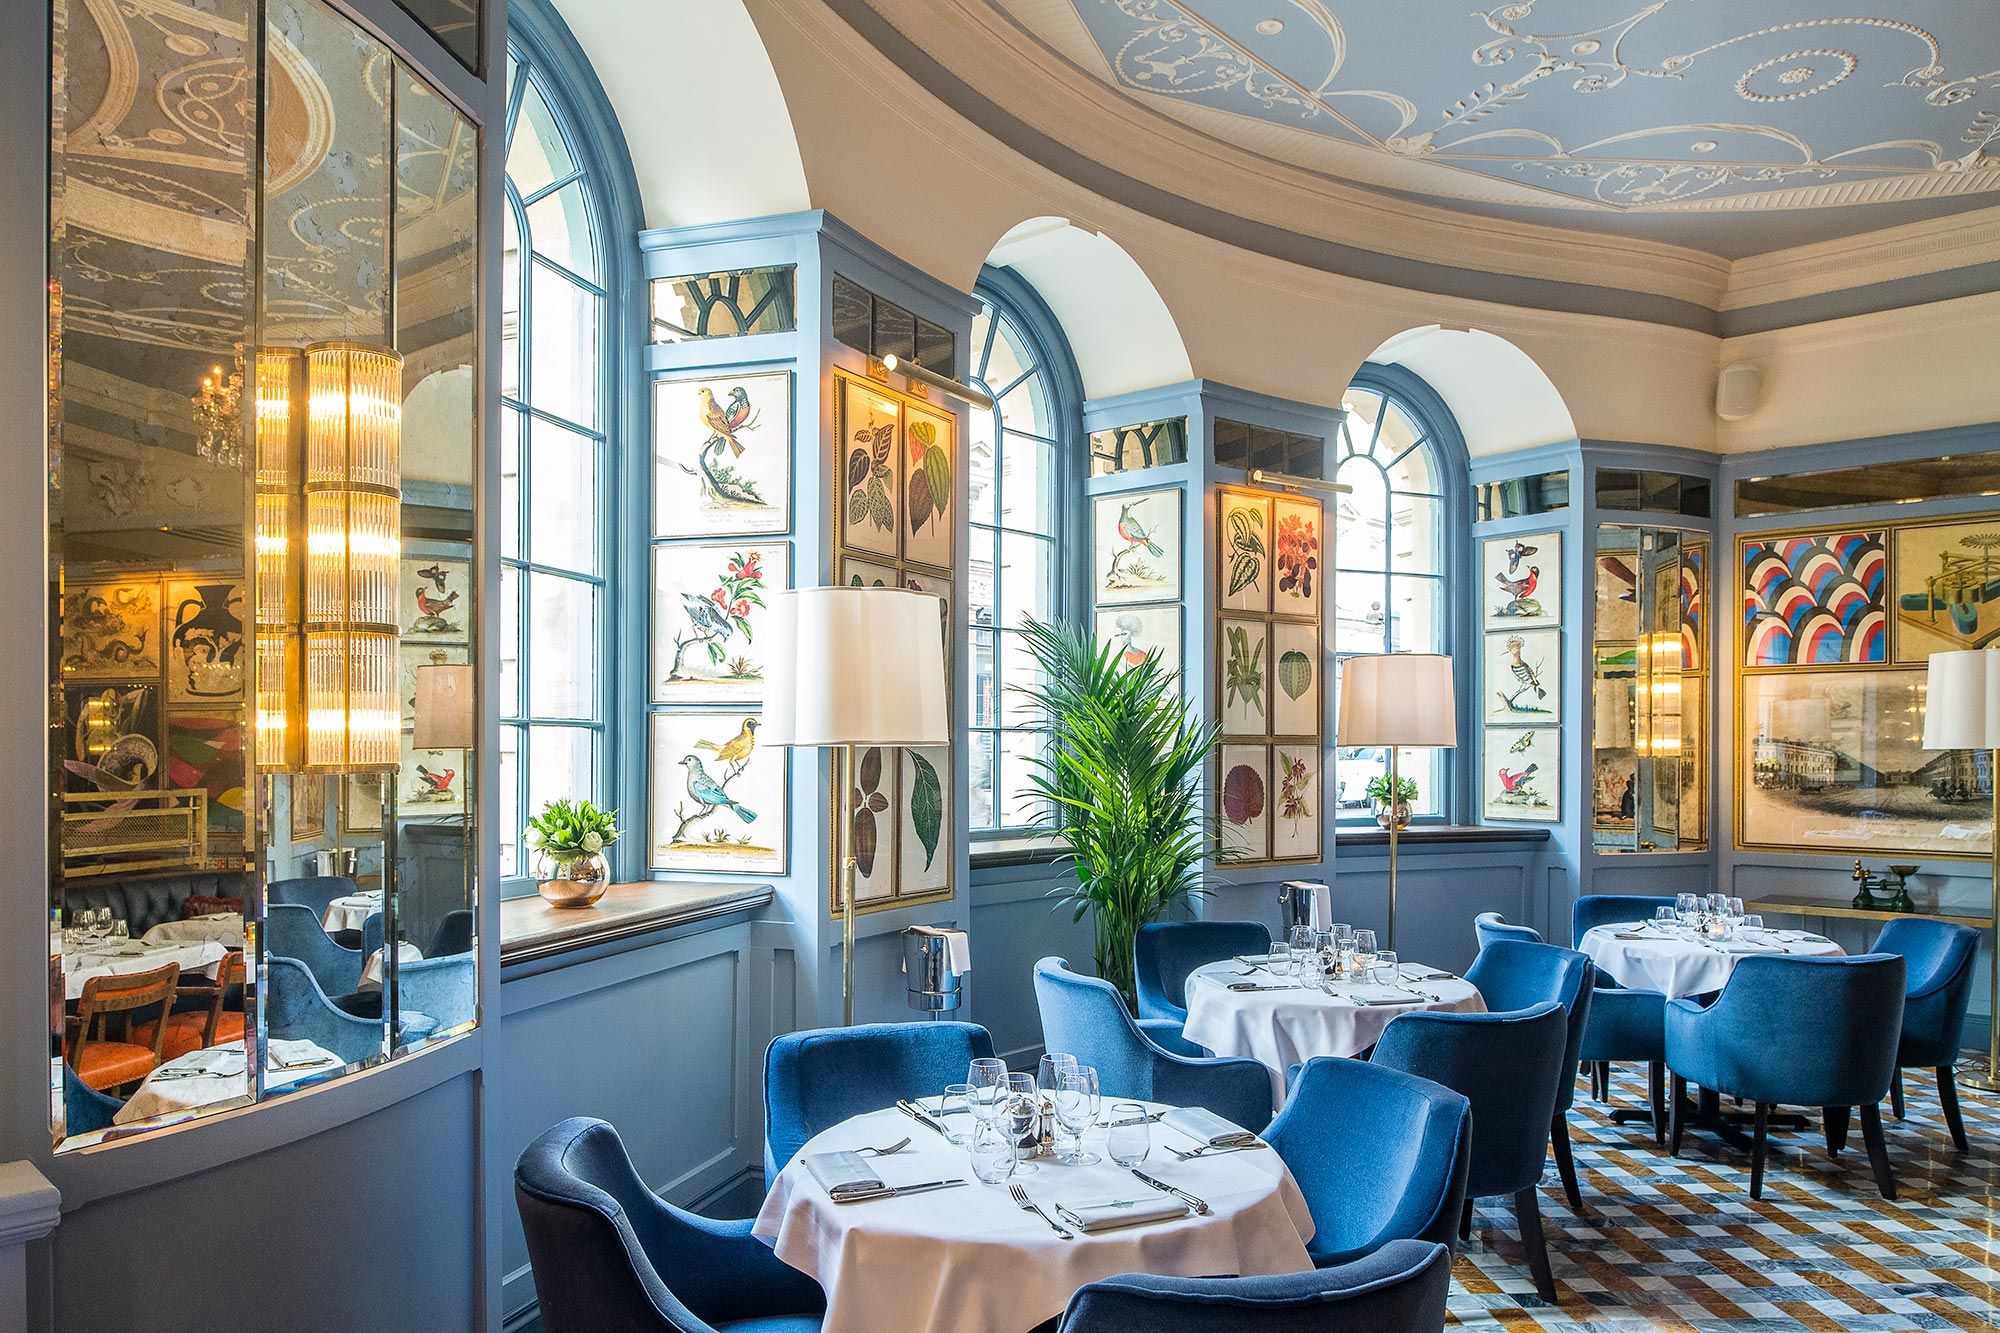 Breakfast in Bath at The Ivy Bath Brasserie, Restaurant in Bath - The Ivy Bath Brasserie